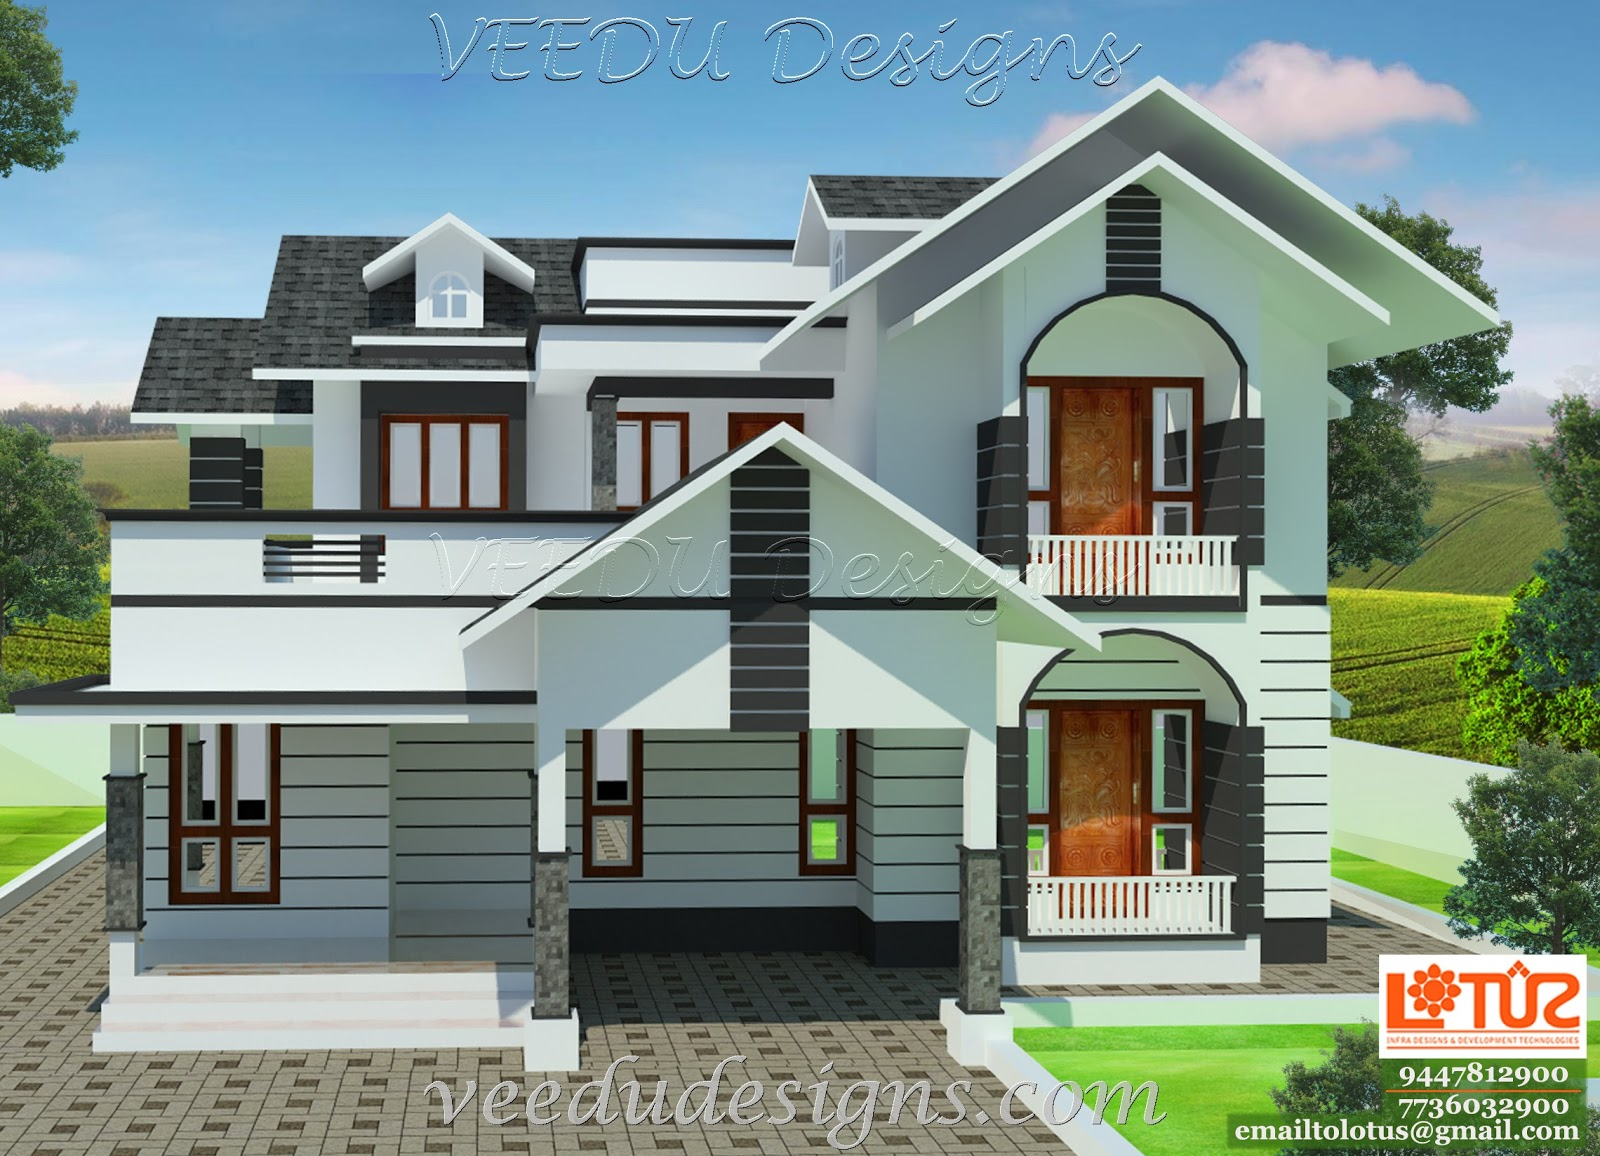 Veedu designs joy studio design gallery best design for Kerala veedu design